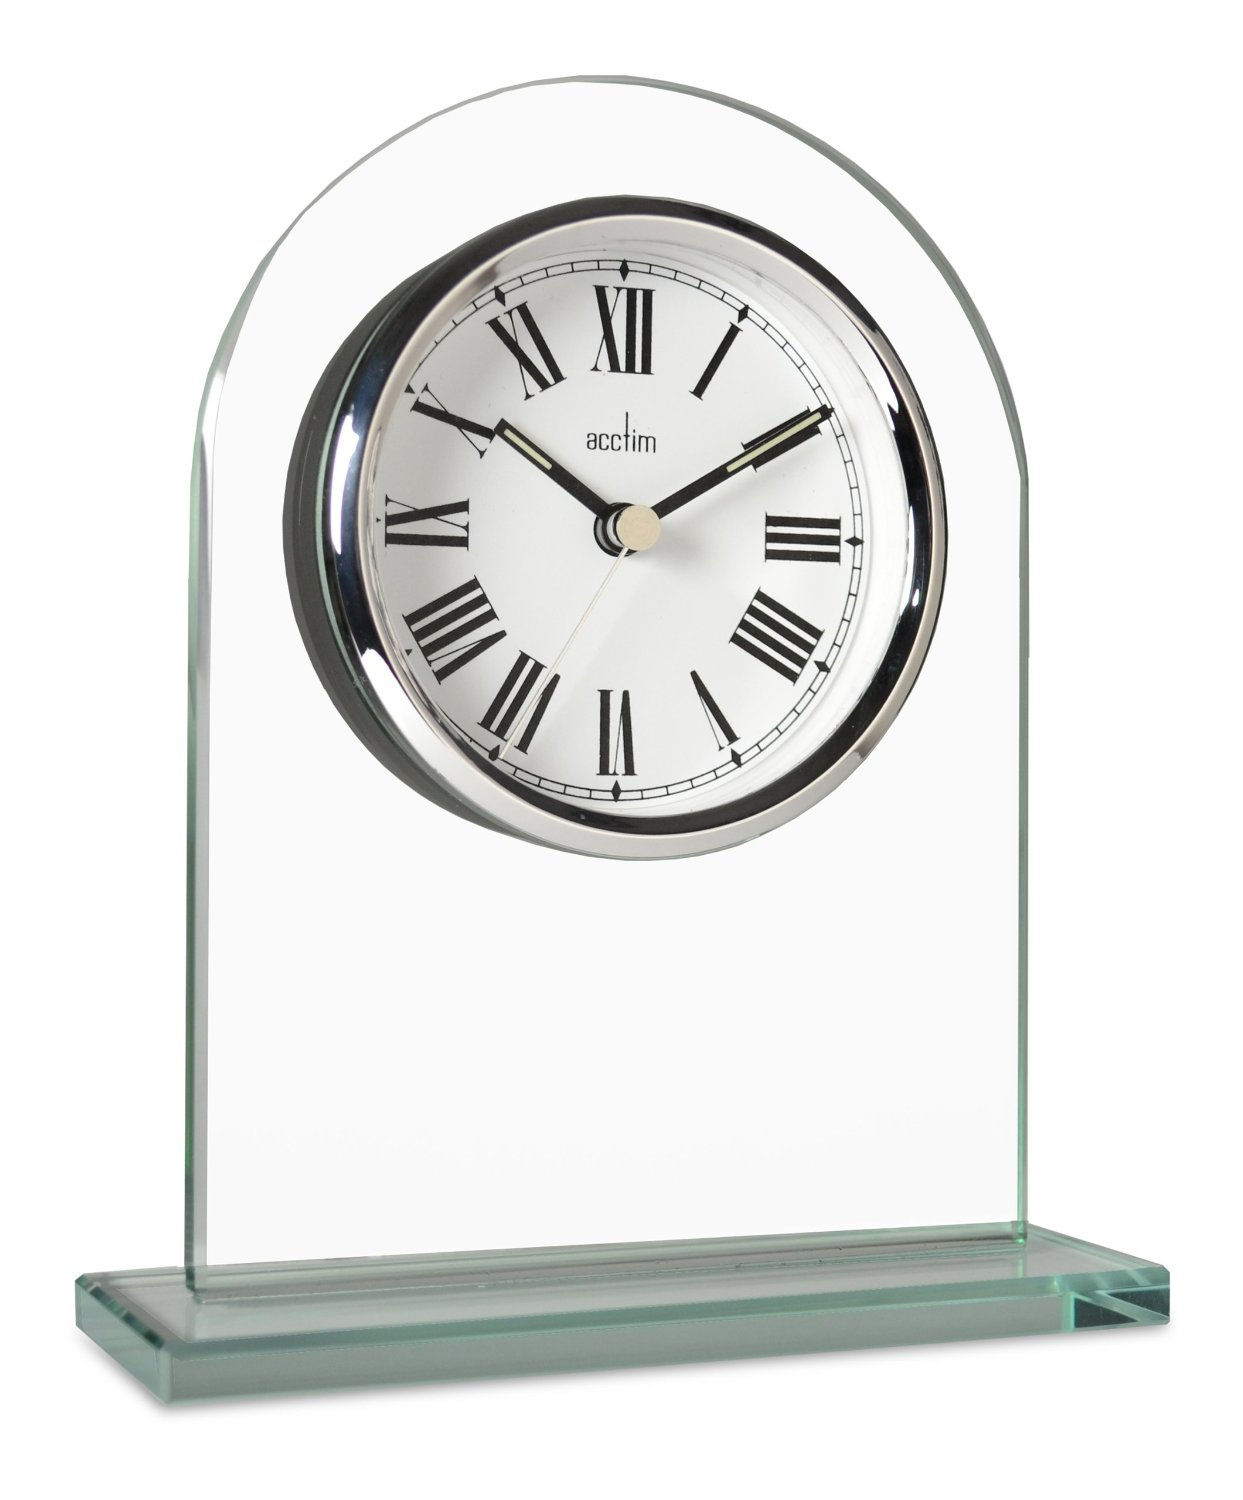 acctim adelaide glass mantel clock